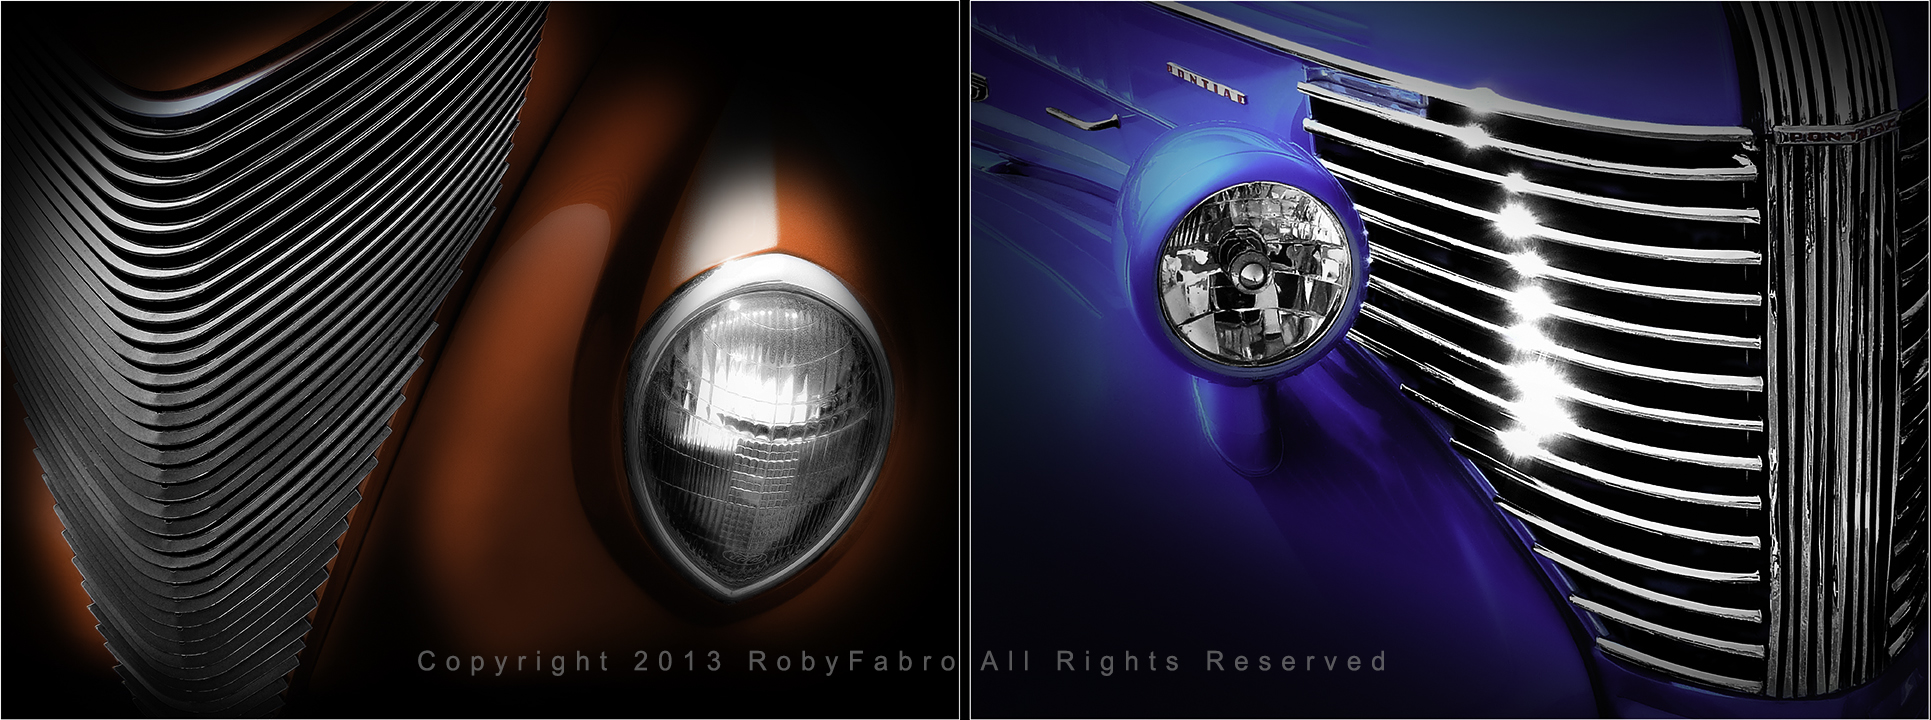 Front Details of Vintage Cars. Boston automotive photographers | RobyFabro